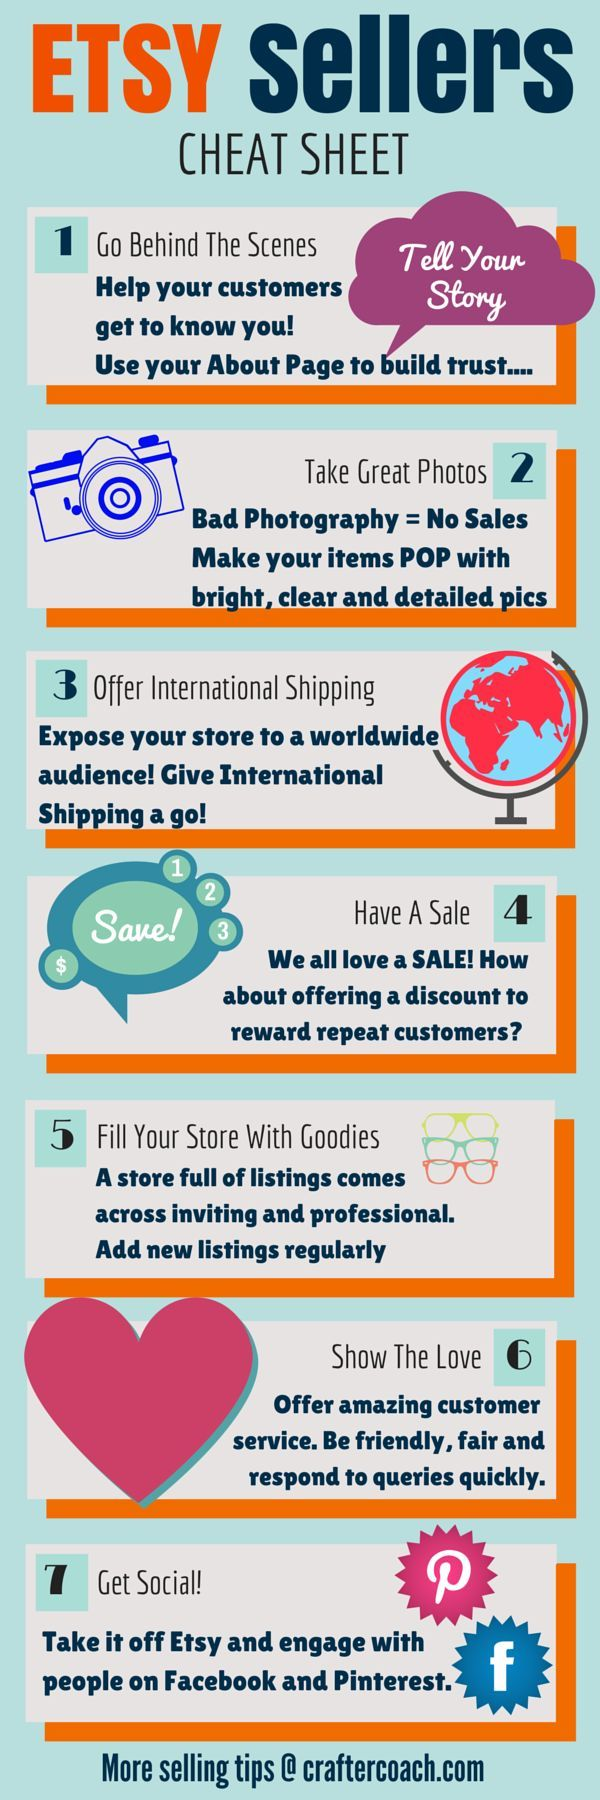 INFOGRAPHIC - 7 Tips For Selling On Etsy in 2015